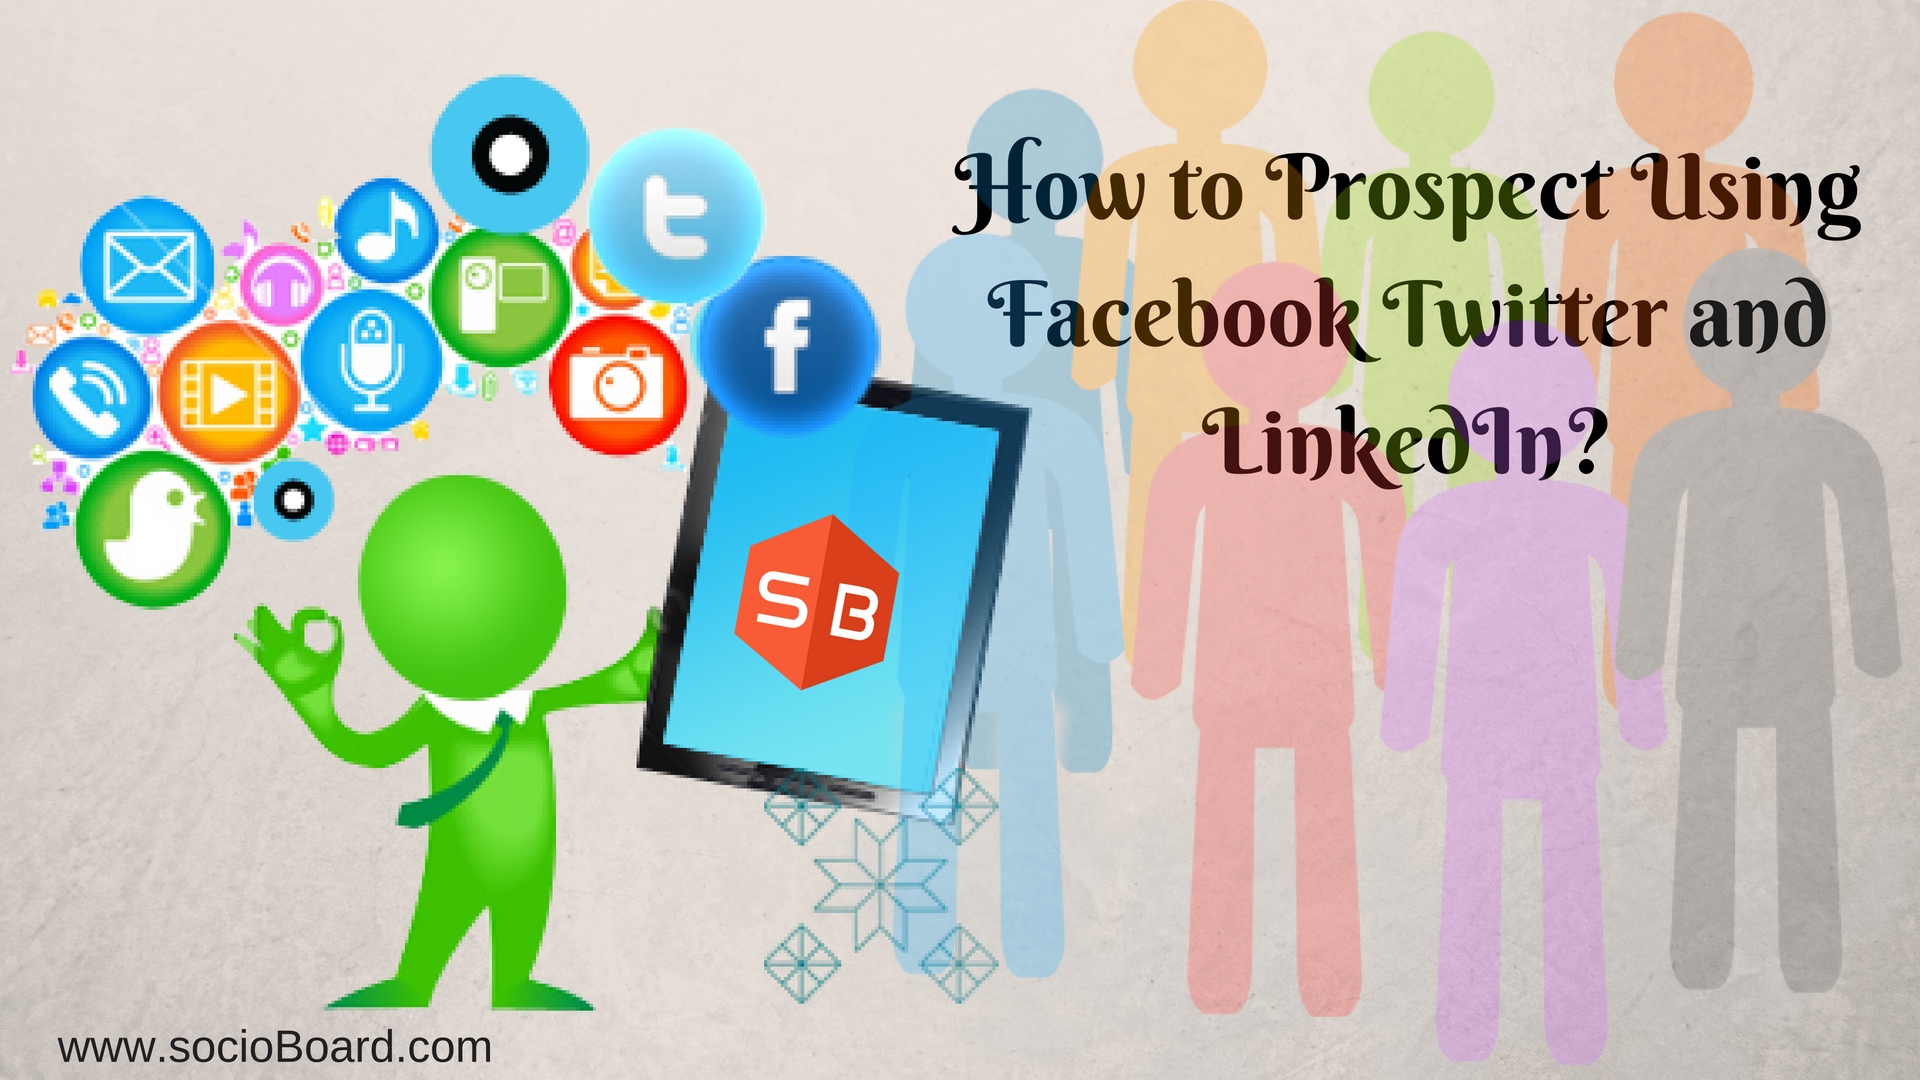 How to Prospect Using Facebook Twitter and LinkedIn?